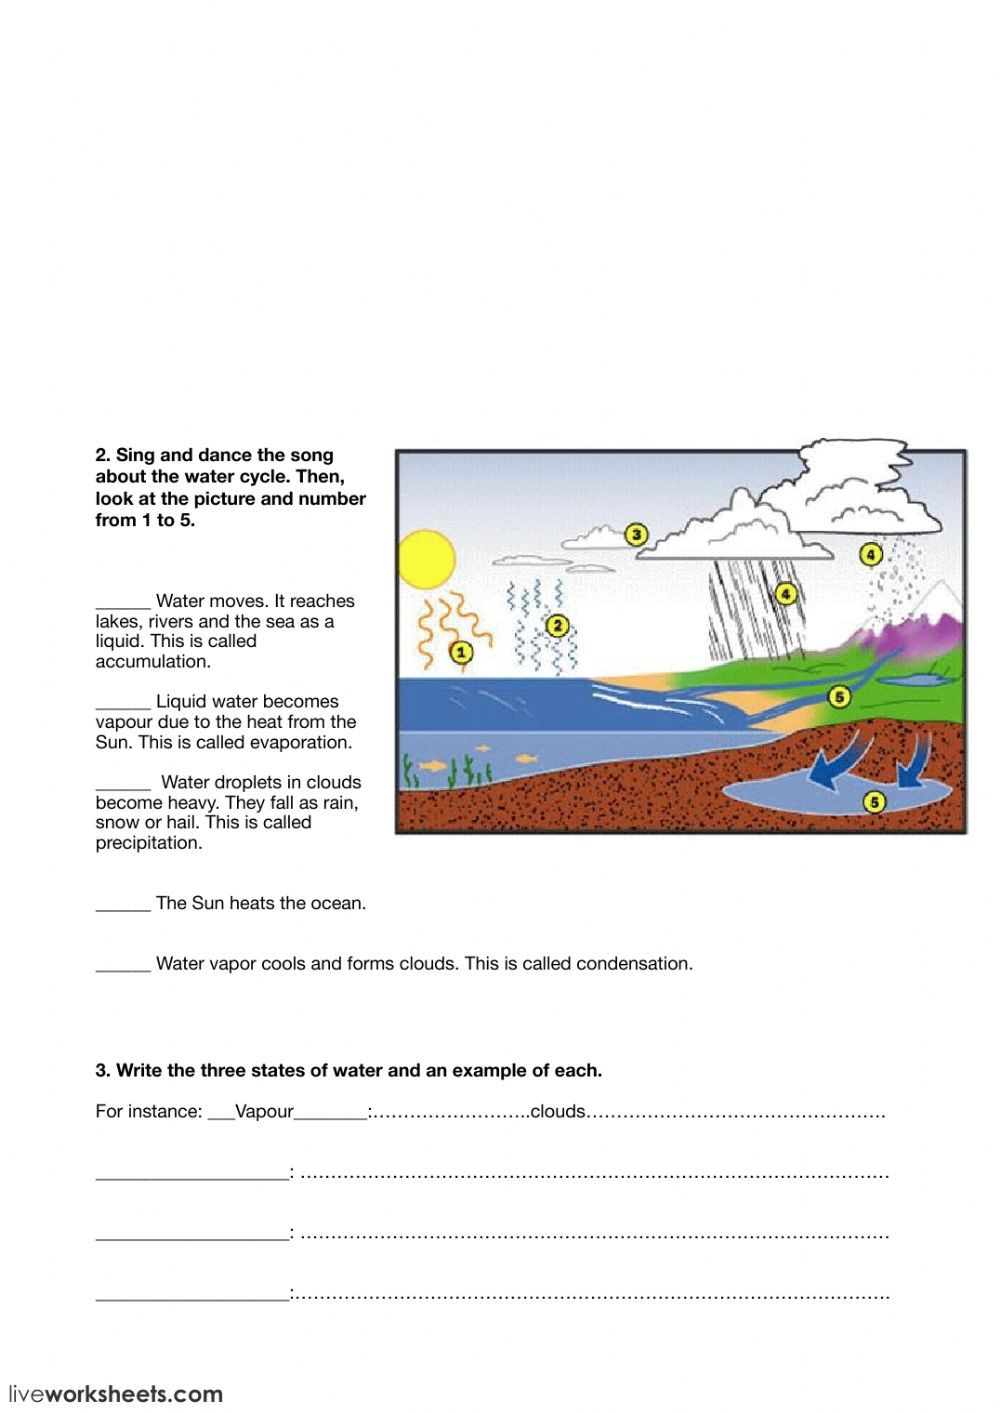 Water Cycle Worksheet Pdf Water Cycle and States Of Water Interactive Worksheet